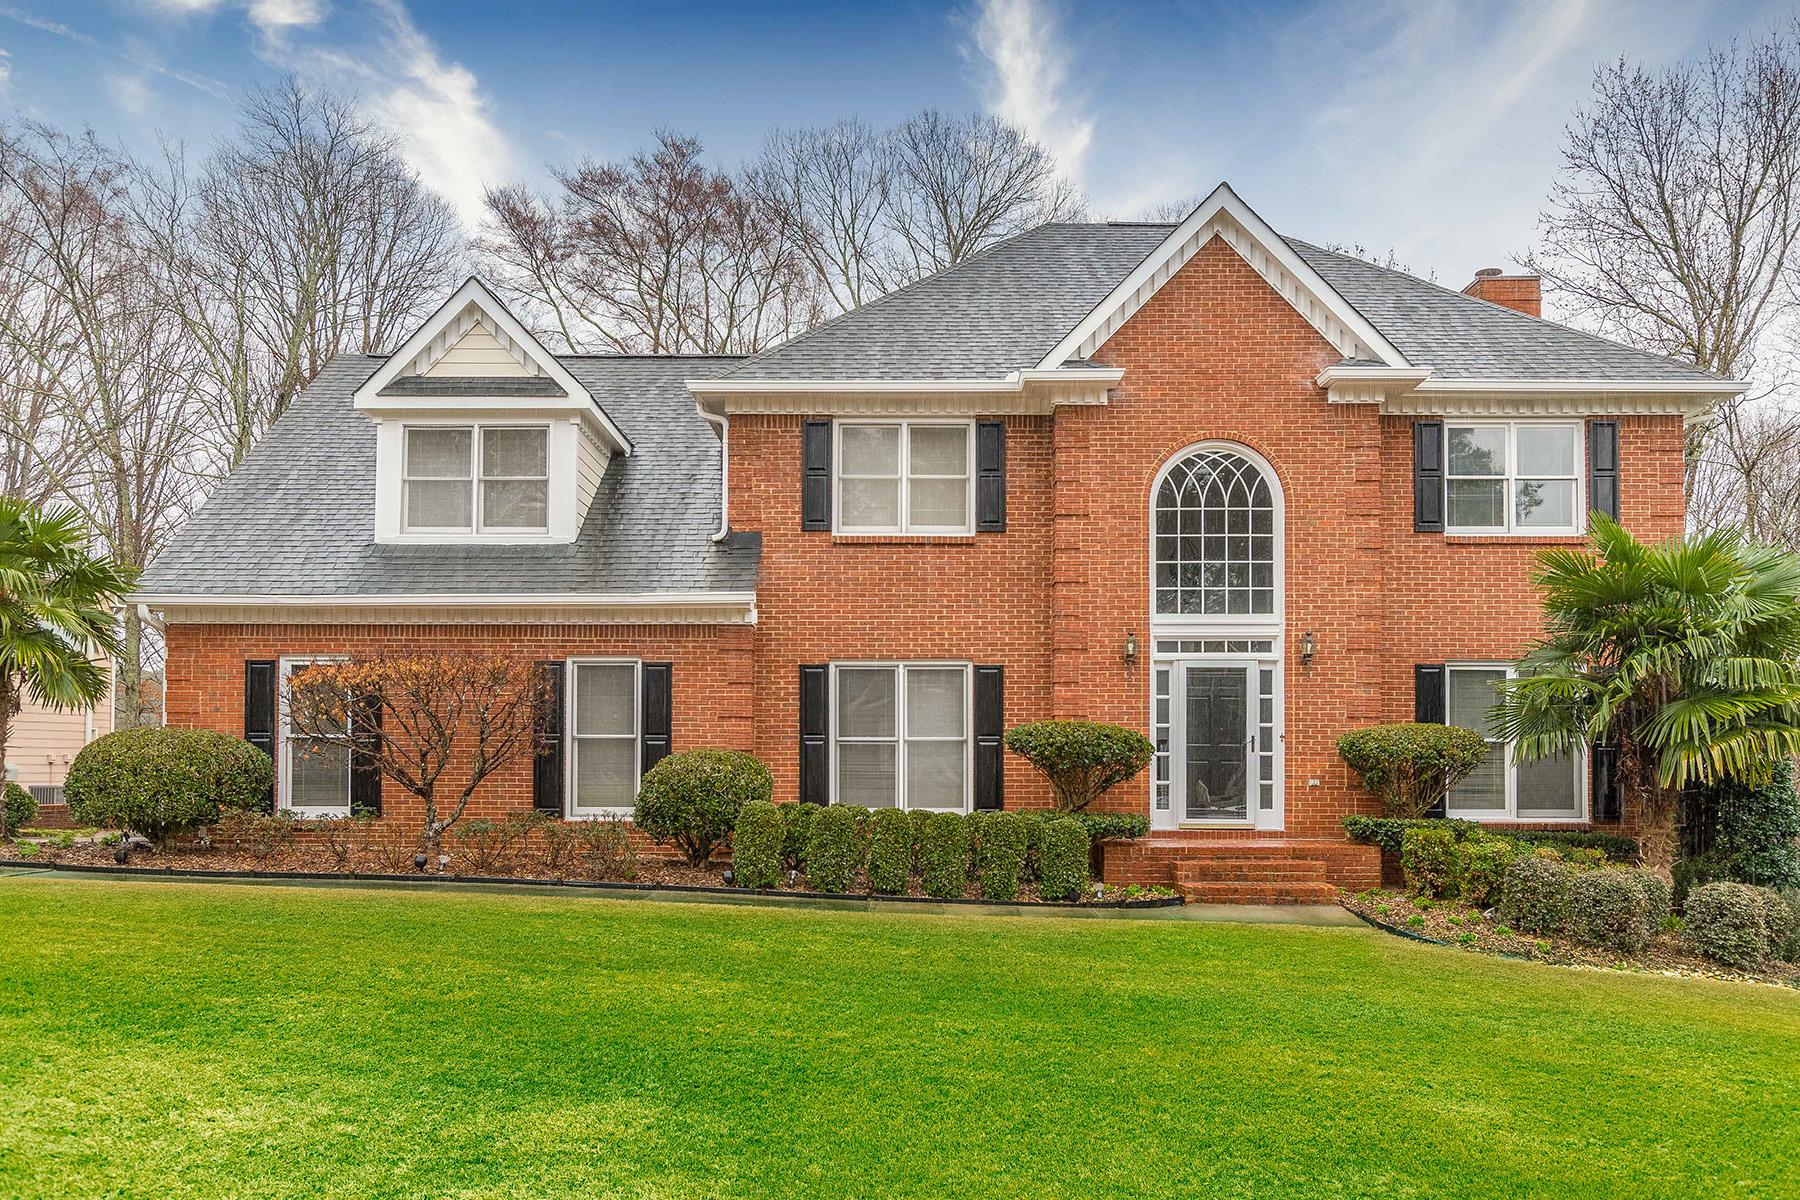 Single Family Homes for Active at Dreamy Snellville Home With Amazing Backyard 3722 Grahams Port Lane Snellville, Georgia 30039 United States